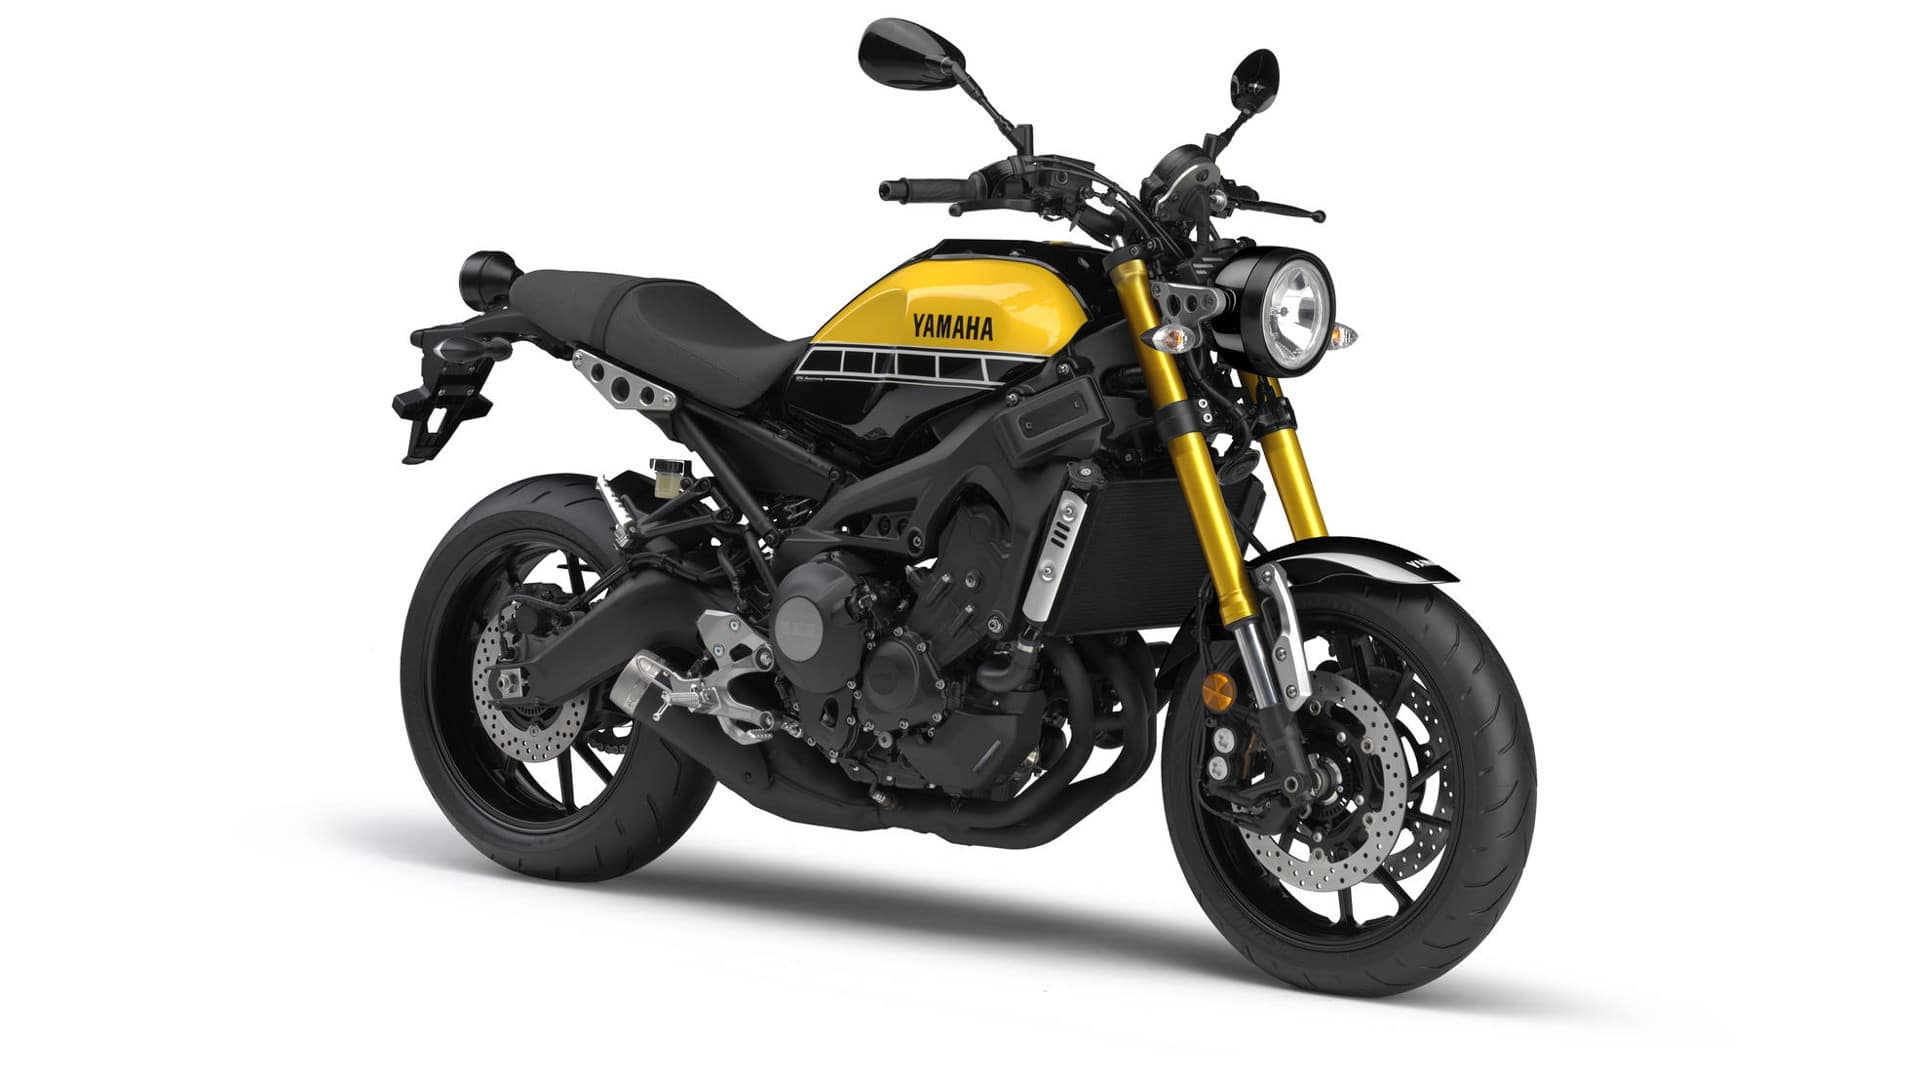 Coming Soon: Retro-Styled 2016 Yamaha XSR900 - Motorcycle Life Yamaha Motorcycles